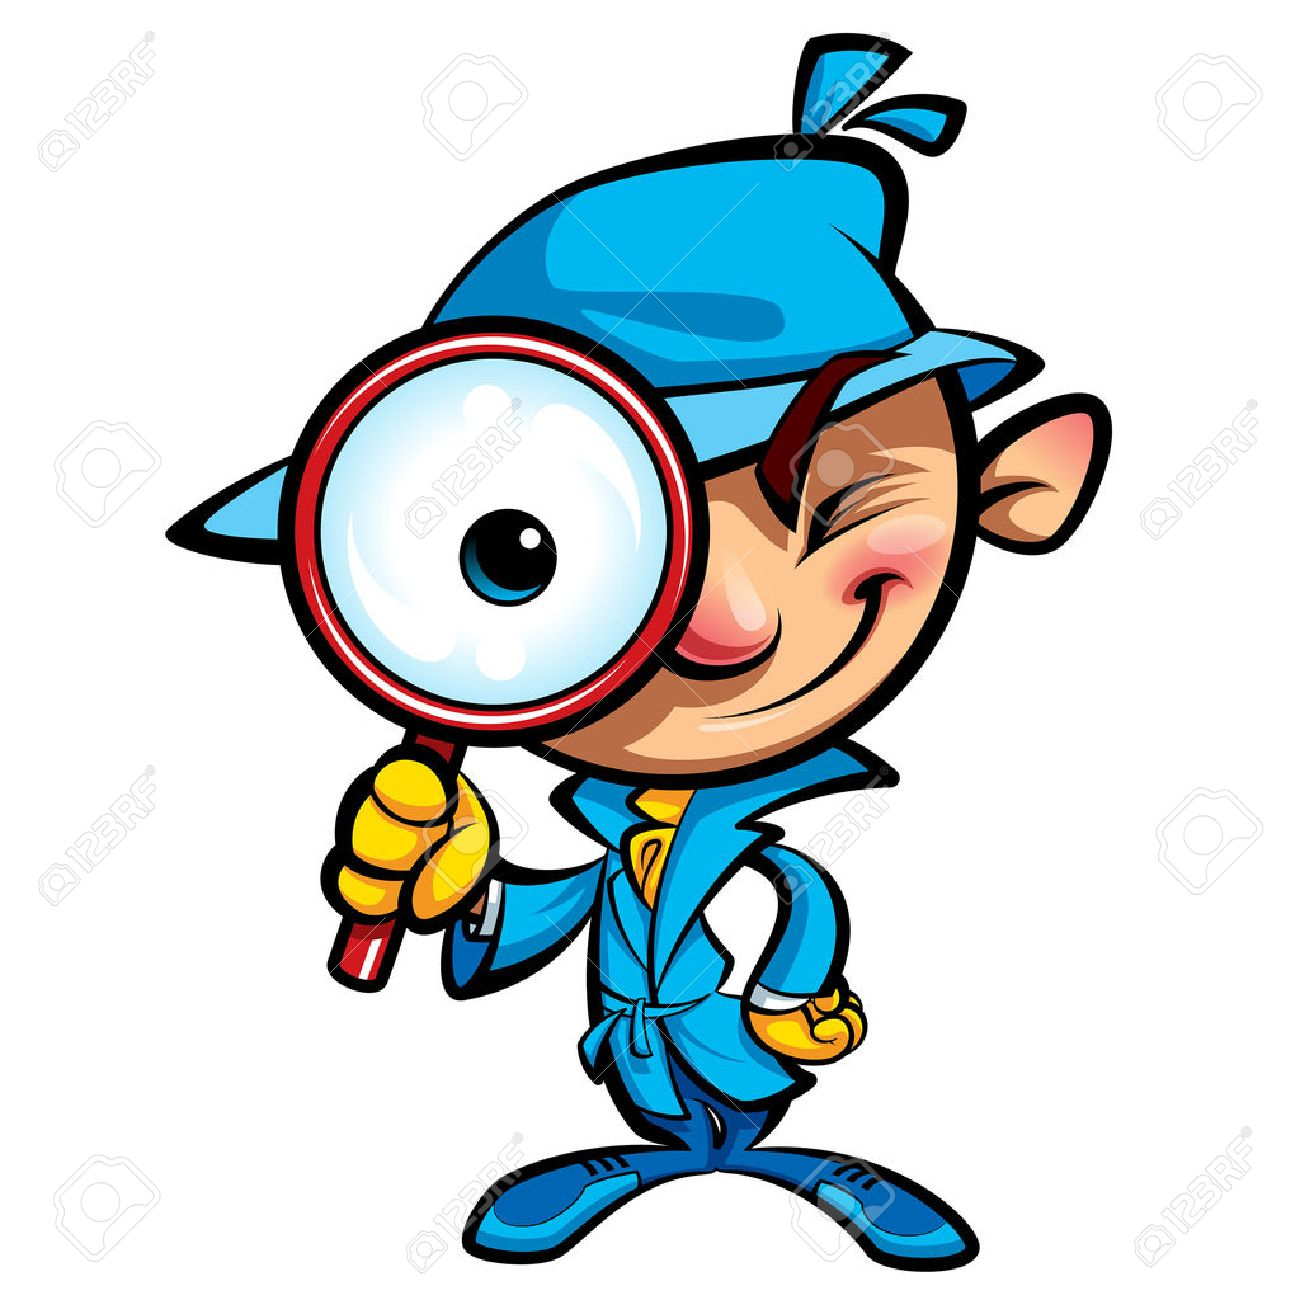 1300x1300 Cartoon Smart Detective In Investigation With Blue Coat Looking